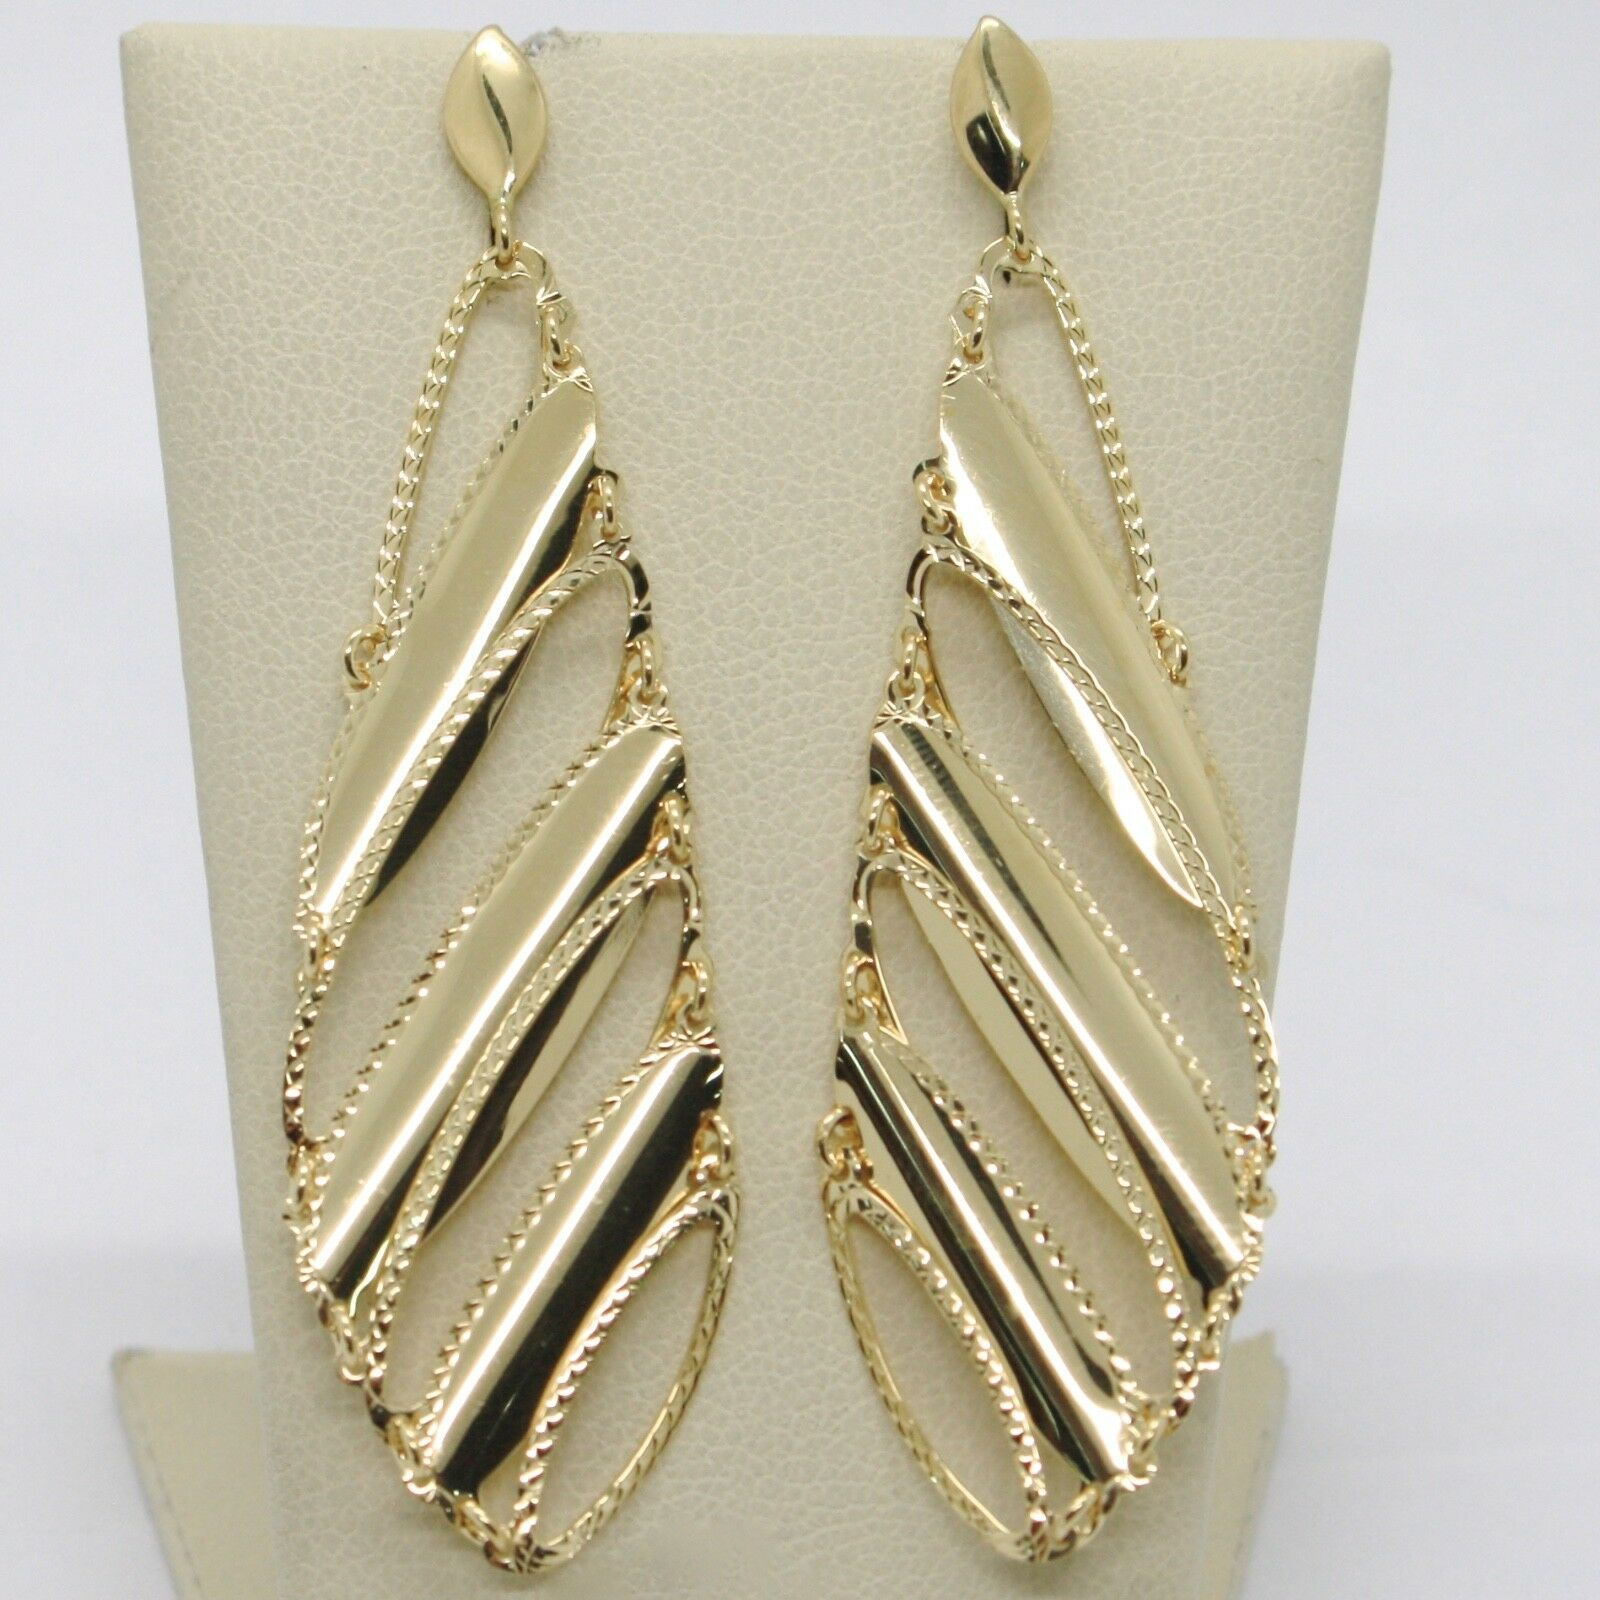 SOLID 18K YELLOW GOLD LONG PENDANT EARRINGS FINELY WORKED DROPS, MADE IN ITALY